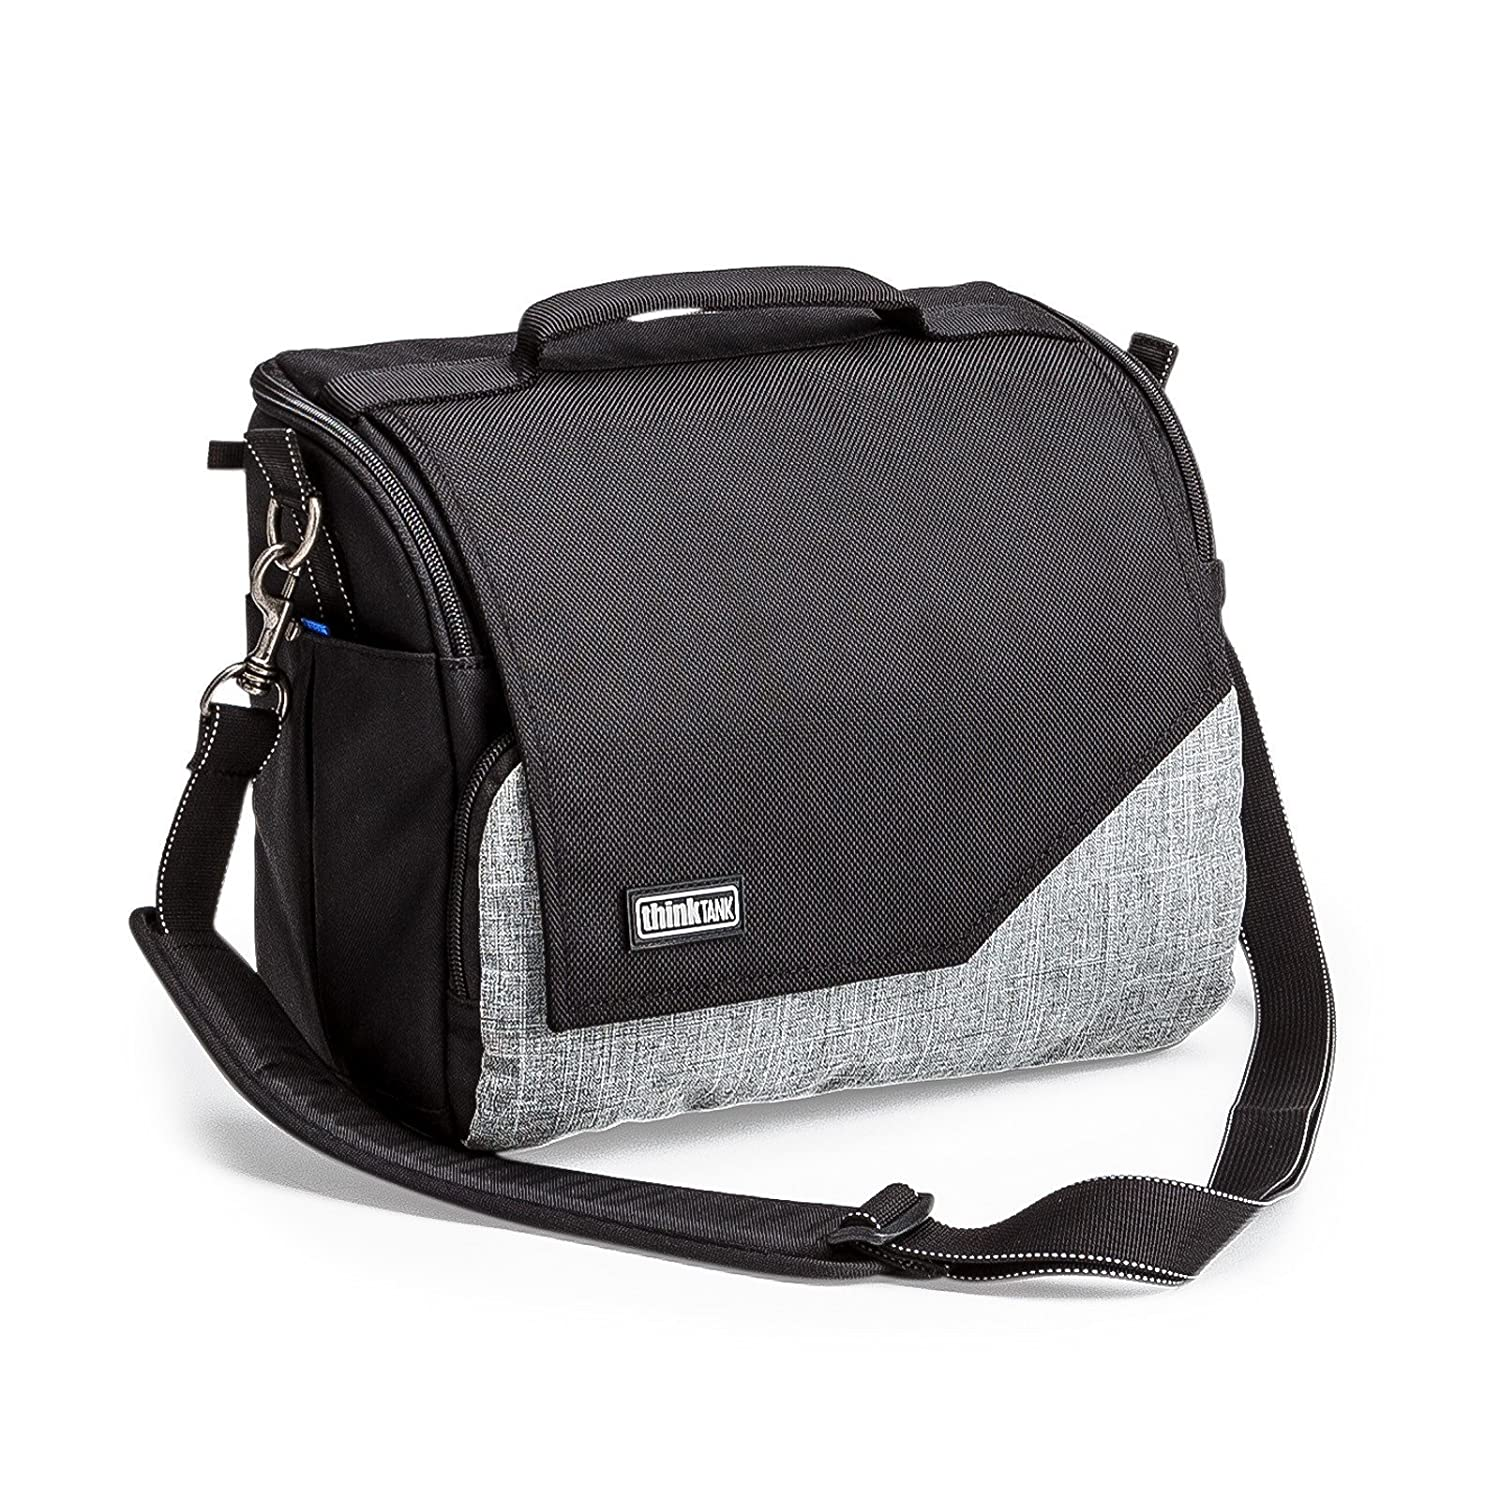 Think Tank Mirrorless Mover 30i Camera Bag (Black)